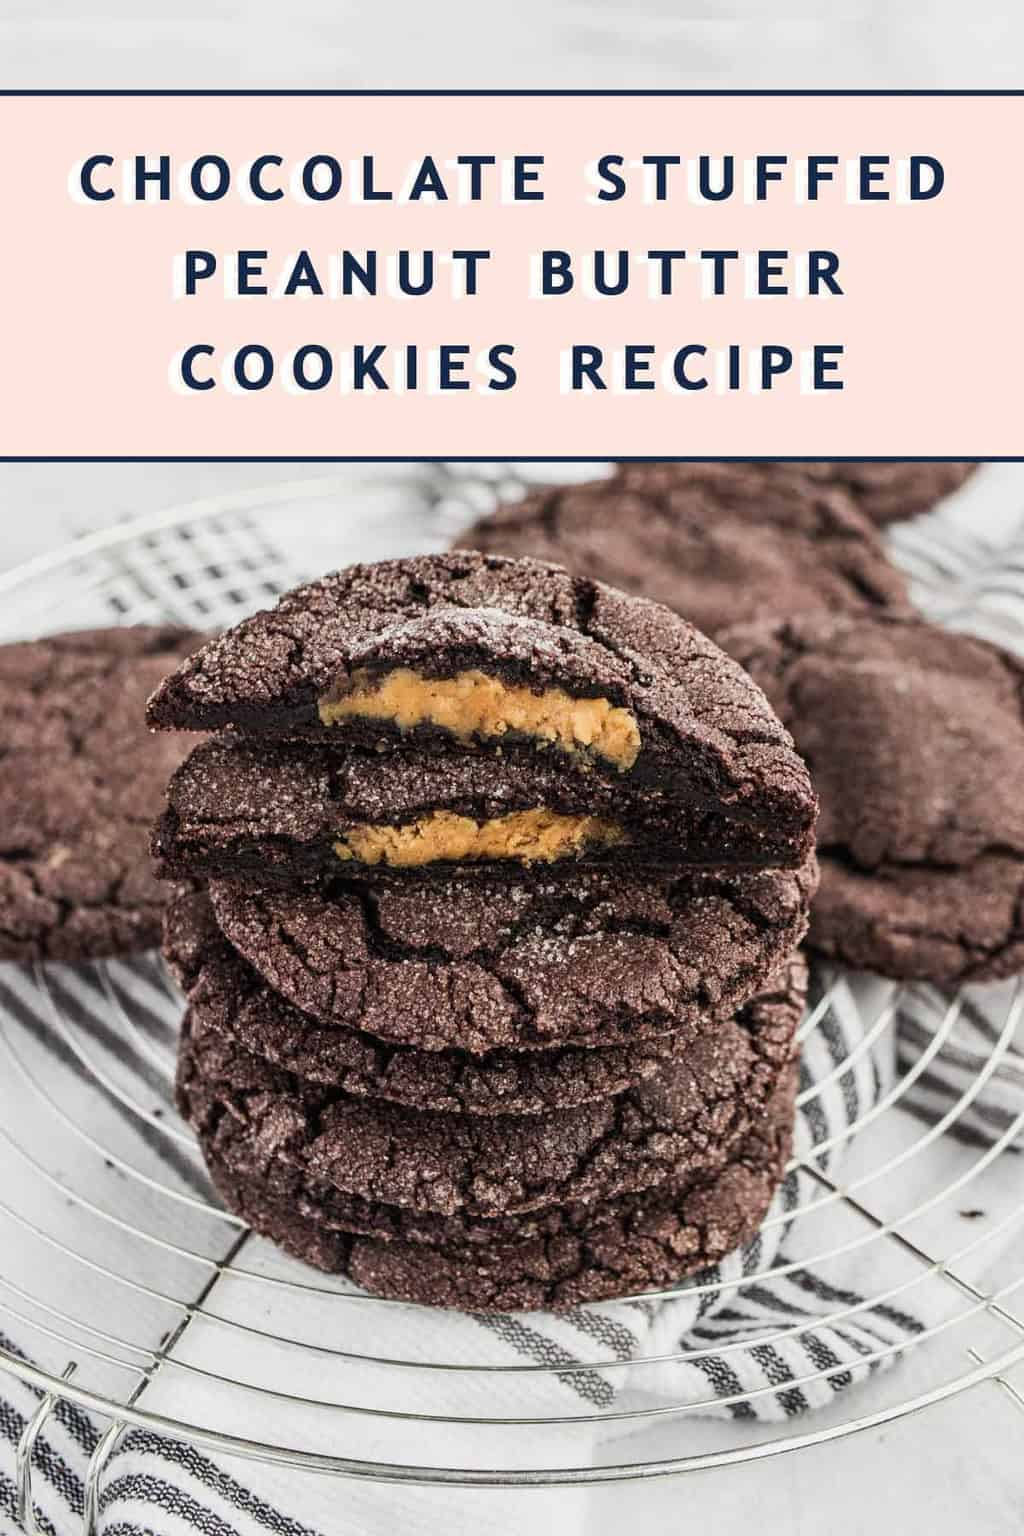 photo of how to make the best chocolate peanut butter stuffed cookies recipe by top Houston lifestyle blogger Ashley Rose of Sugar & Cloth